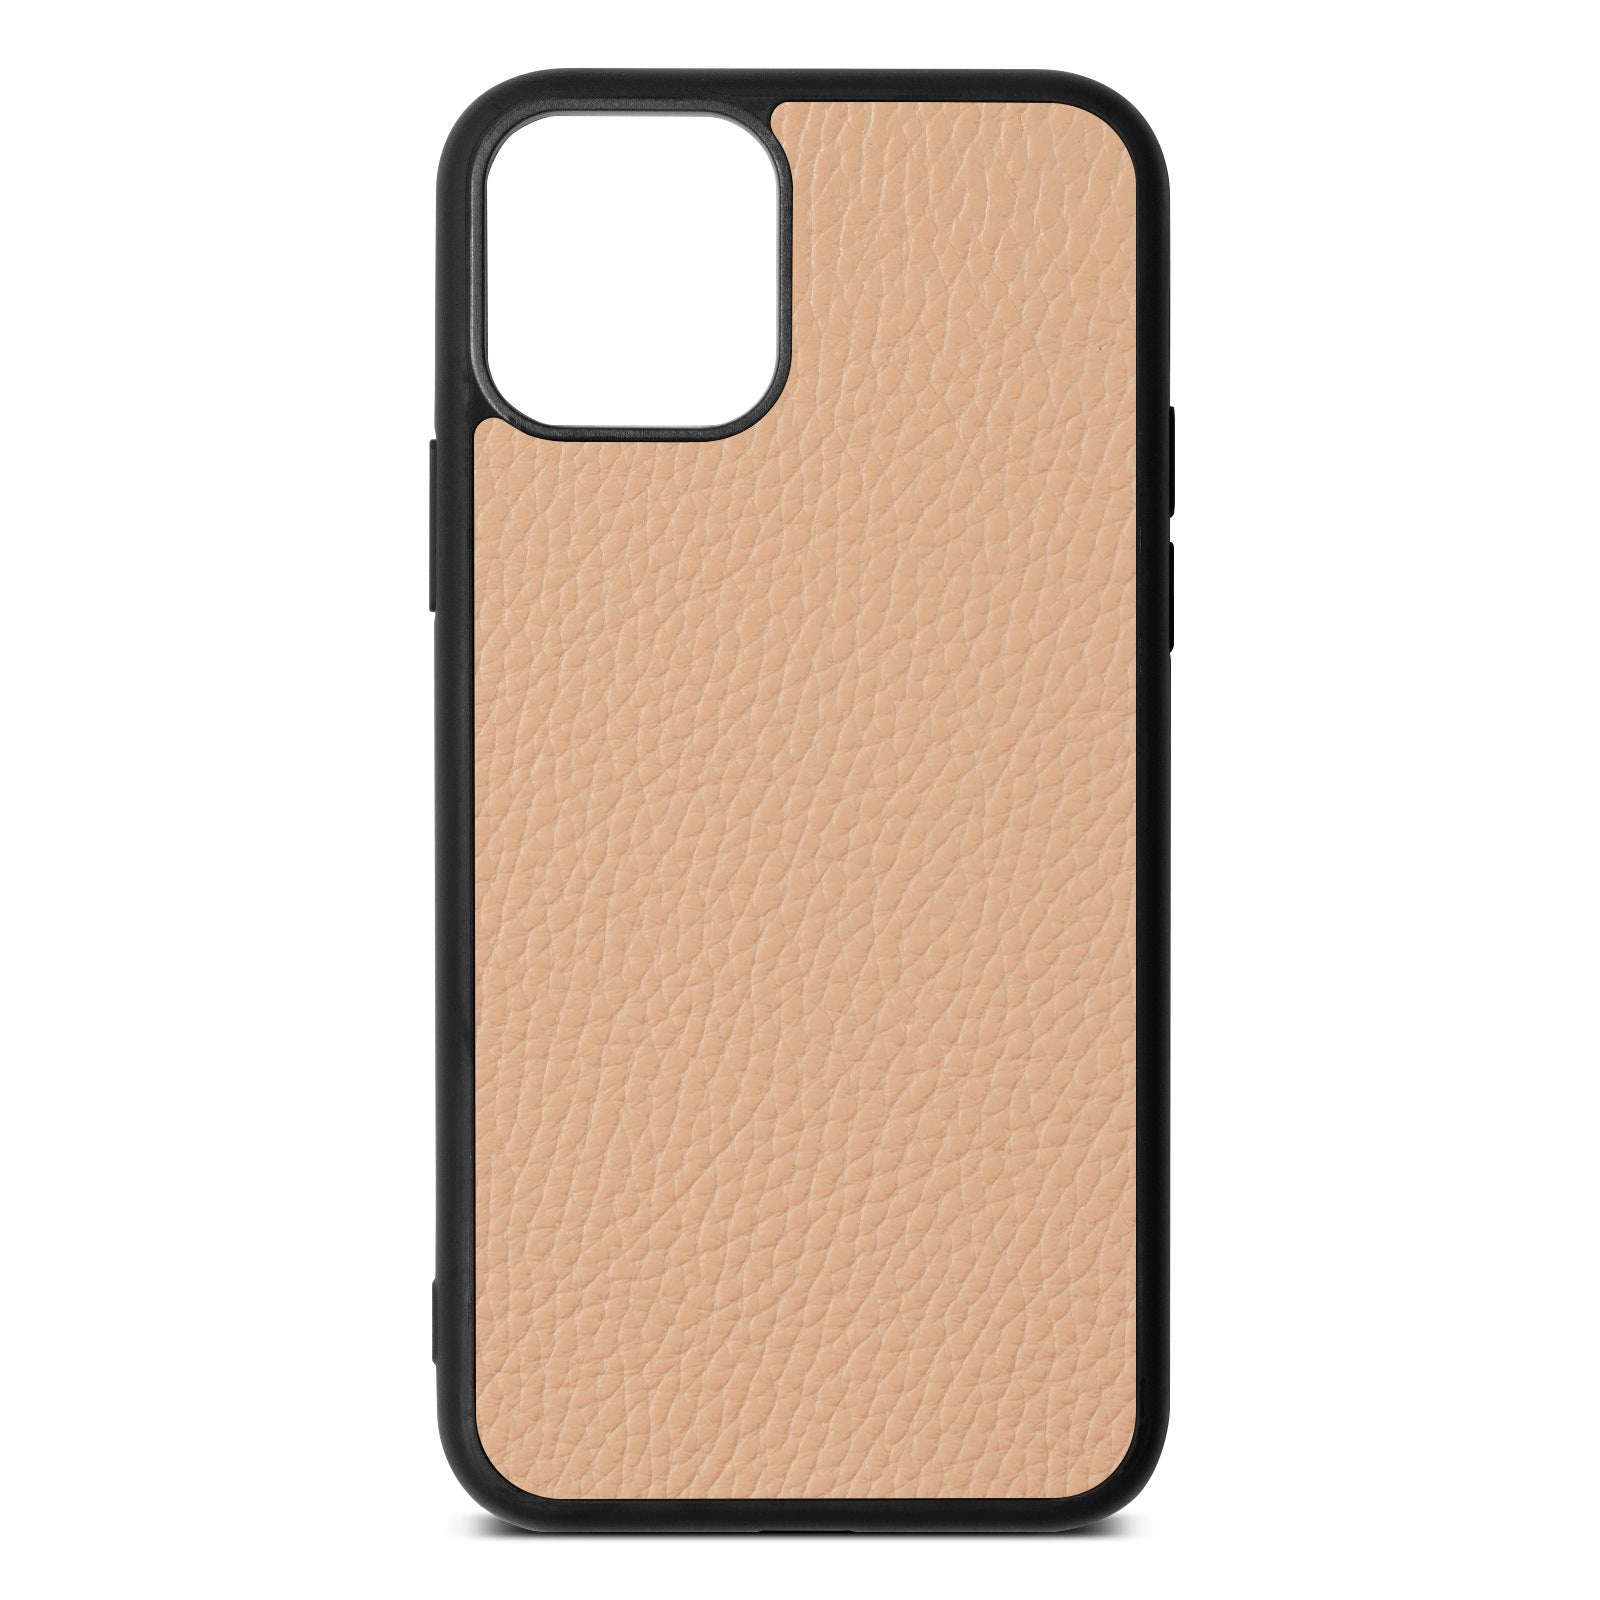 Blank iPhone 11 Pro Nude Pebble Leather Case